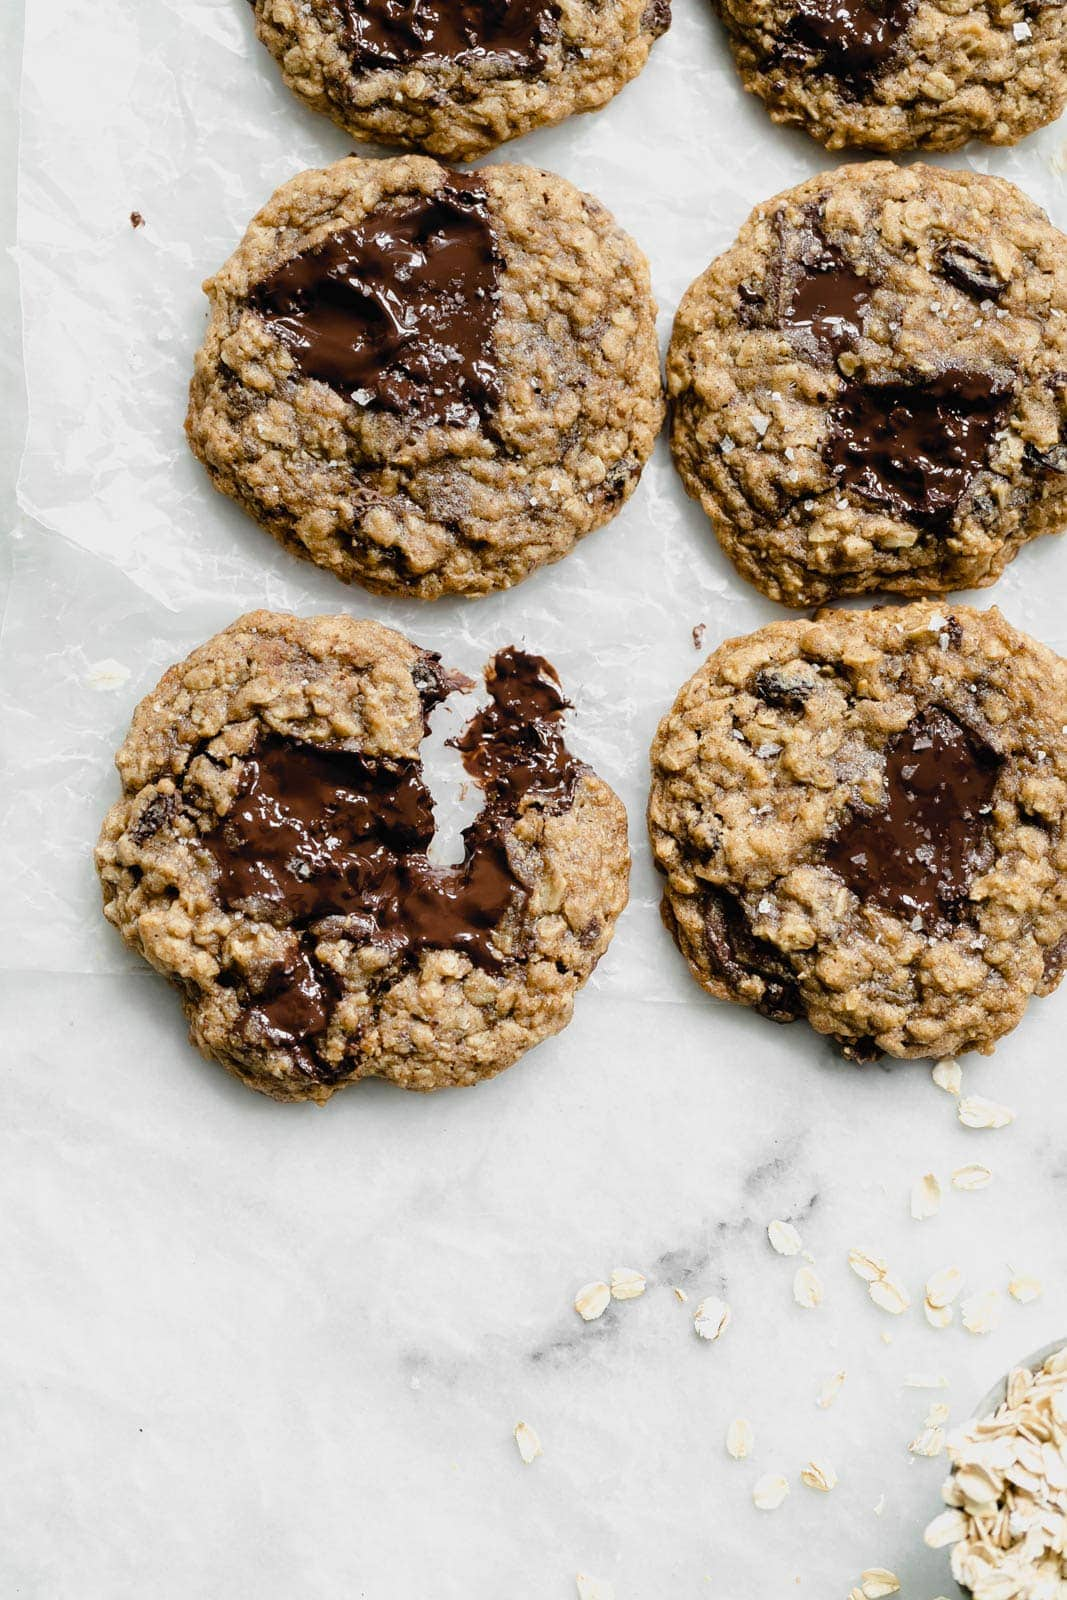 Chewy, soft, and highly addicting, these Giant Bourbon Chocolate Oatmeal Raisin Cookies will be a staple in your house for years to come!